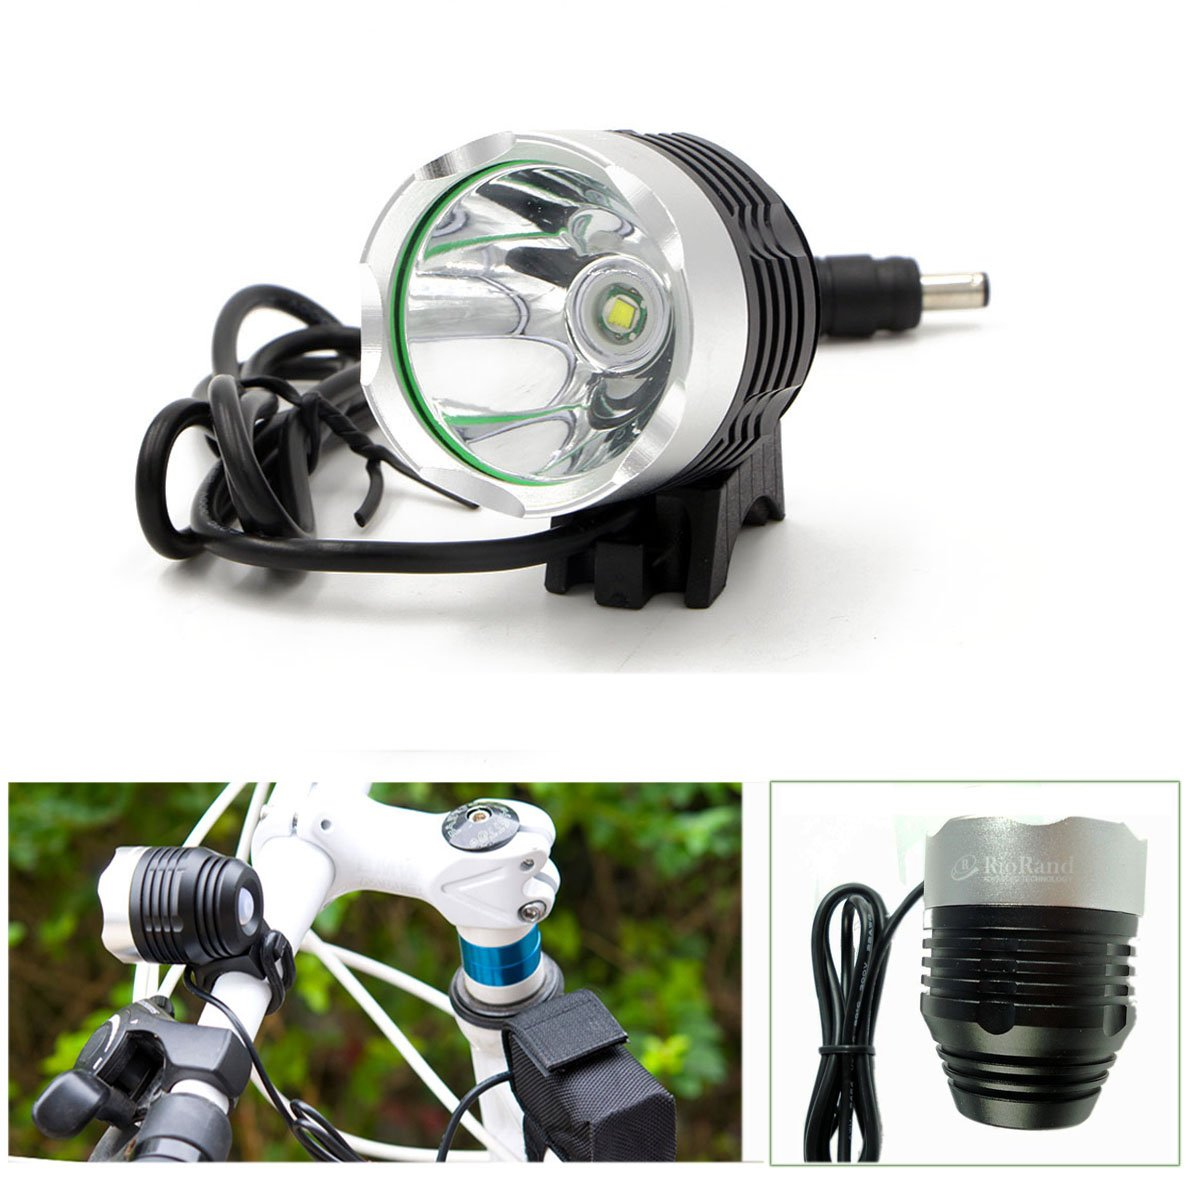 RioRand 4 Mode 1200 Lm Cree Xml T6 Bulb LED Bicycle Bike Headlight Lamp